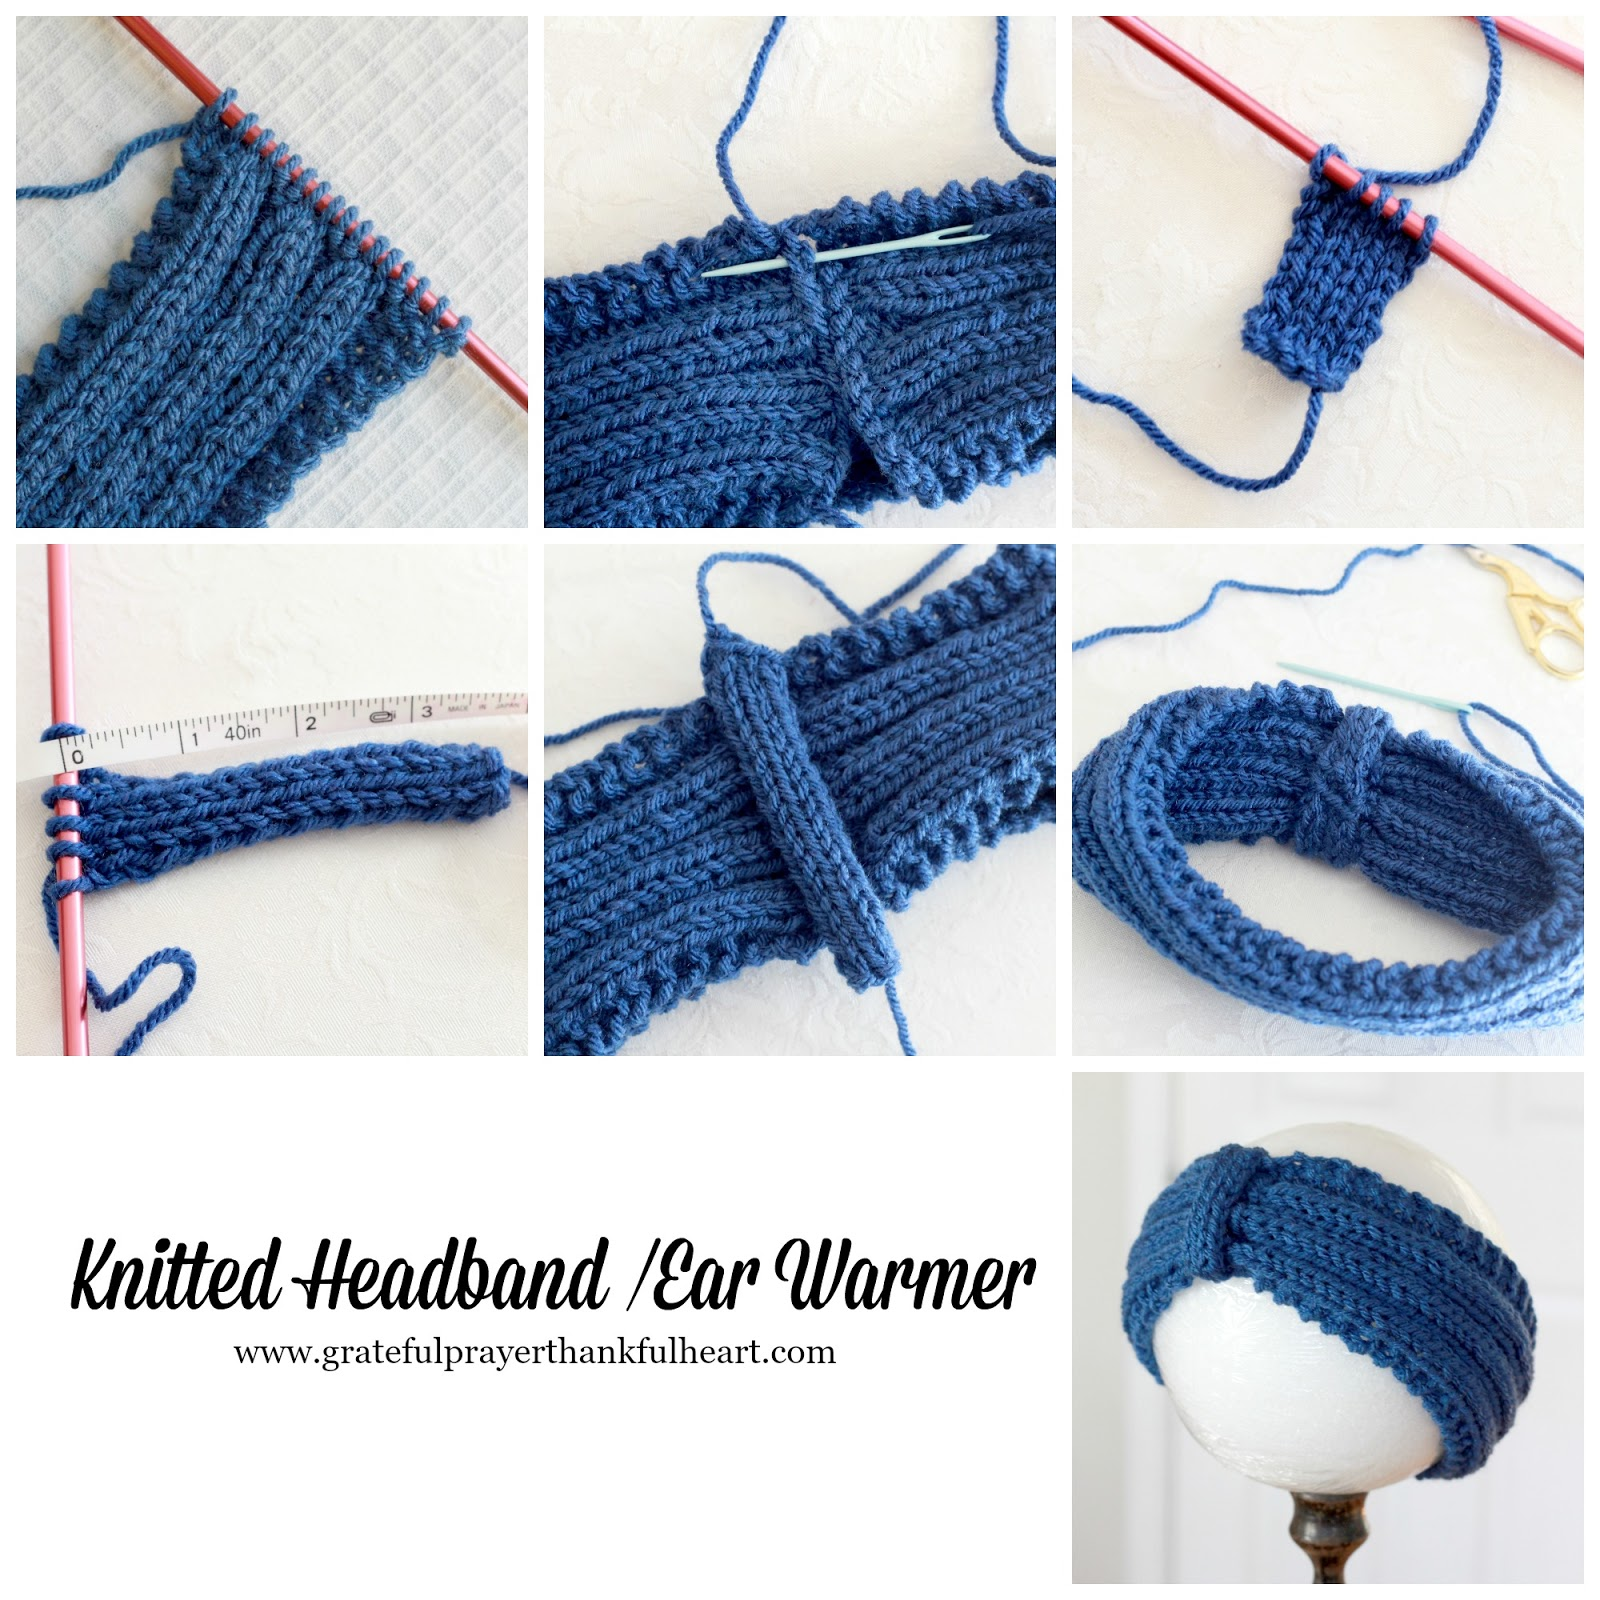 Knitted Headbands and Ear Warmers | Grateful Prayer | Thankful Heart